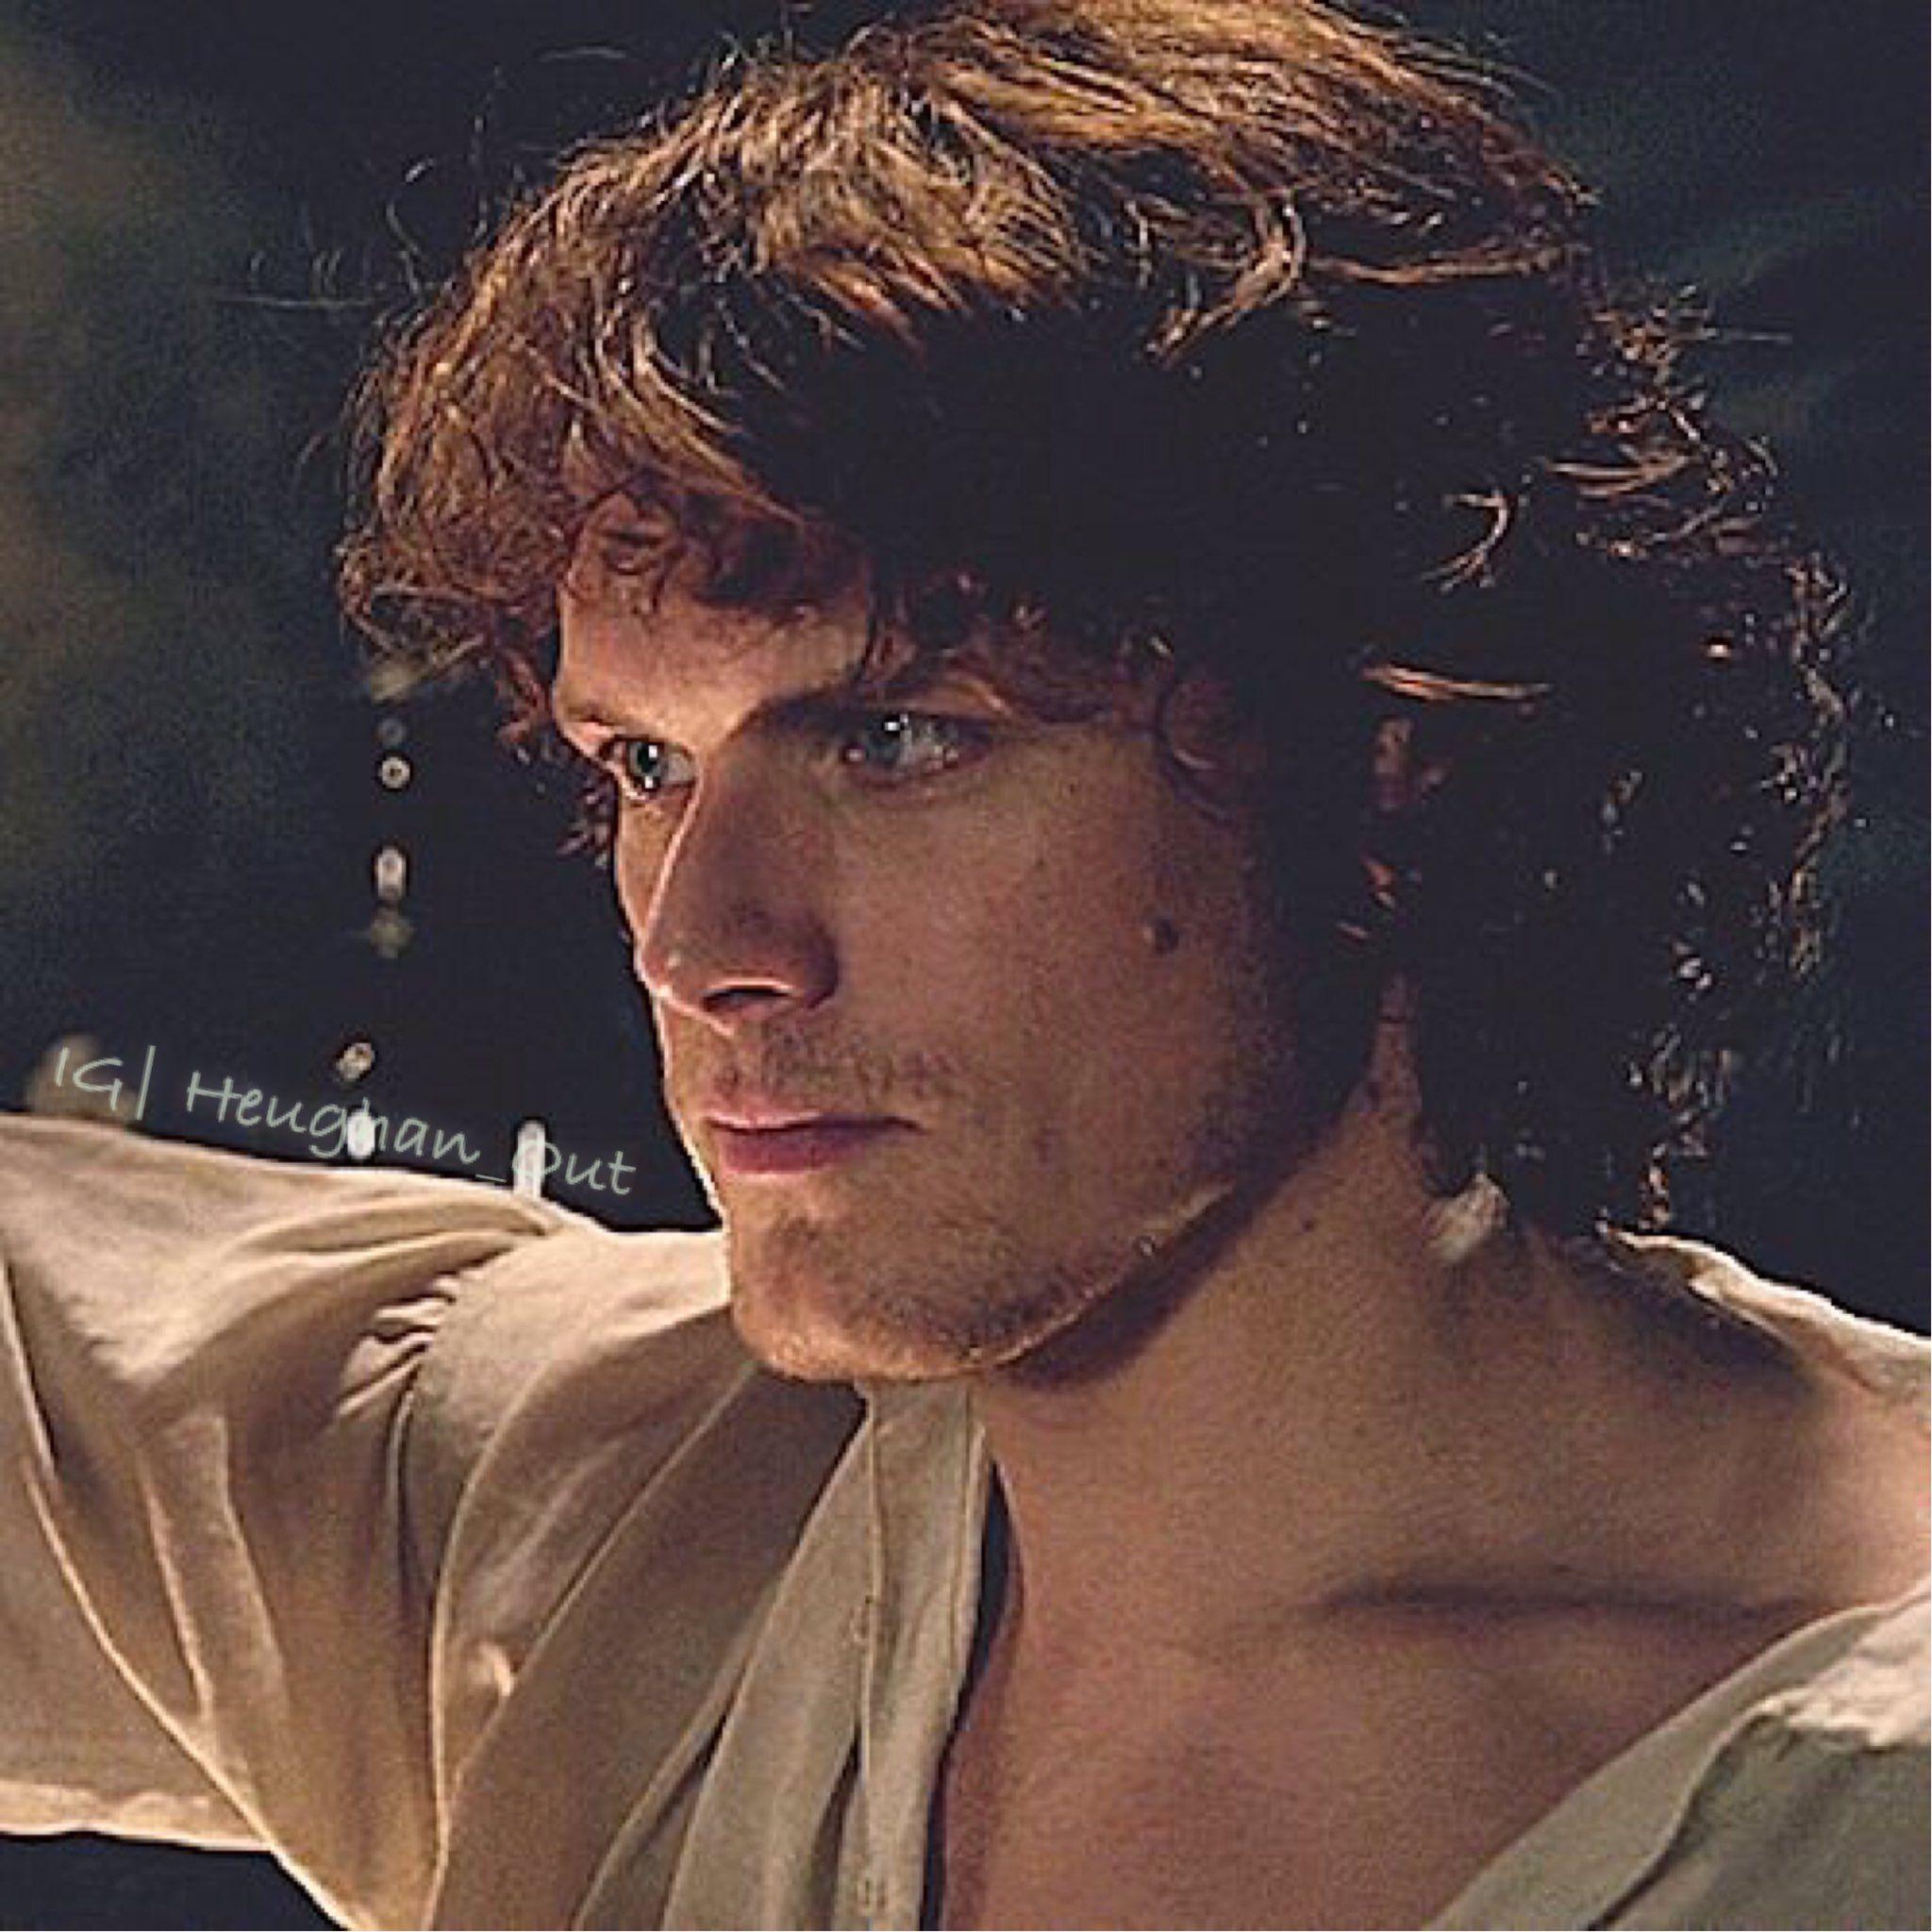 """Christina on Twitter: """"GN💤 @SilverxVideos @stacey_macgowan @Safer_Place @Sheugs @10MinDQ @H_Glumace @TBursoni @ClanHeughan @geno_acedo https://t.co/wyRRkPzcSg"""""""